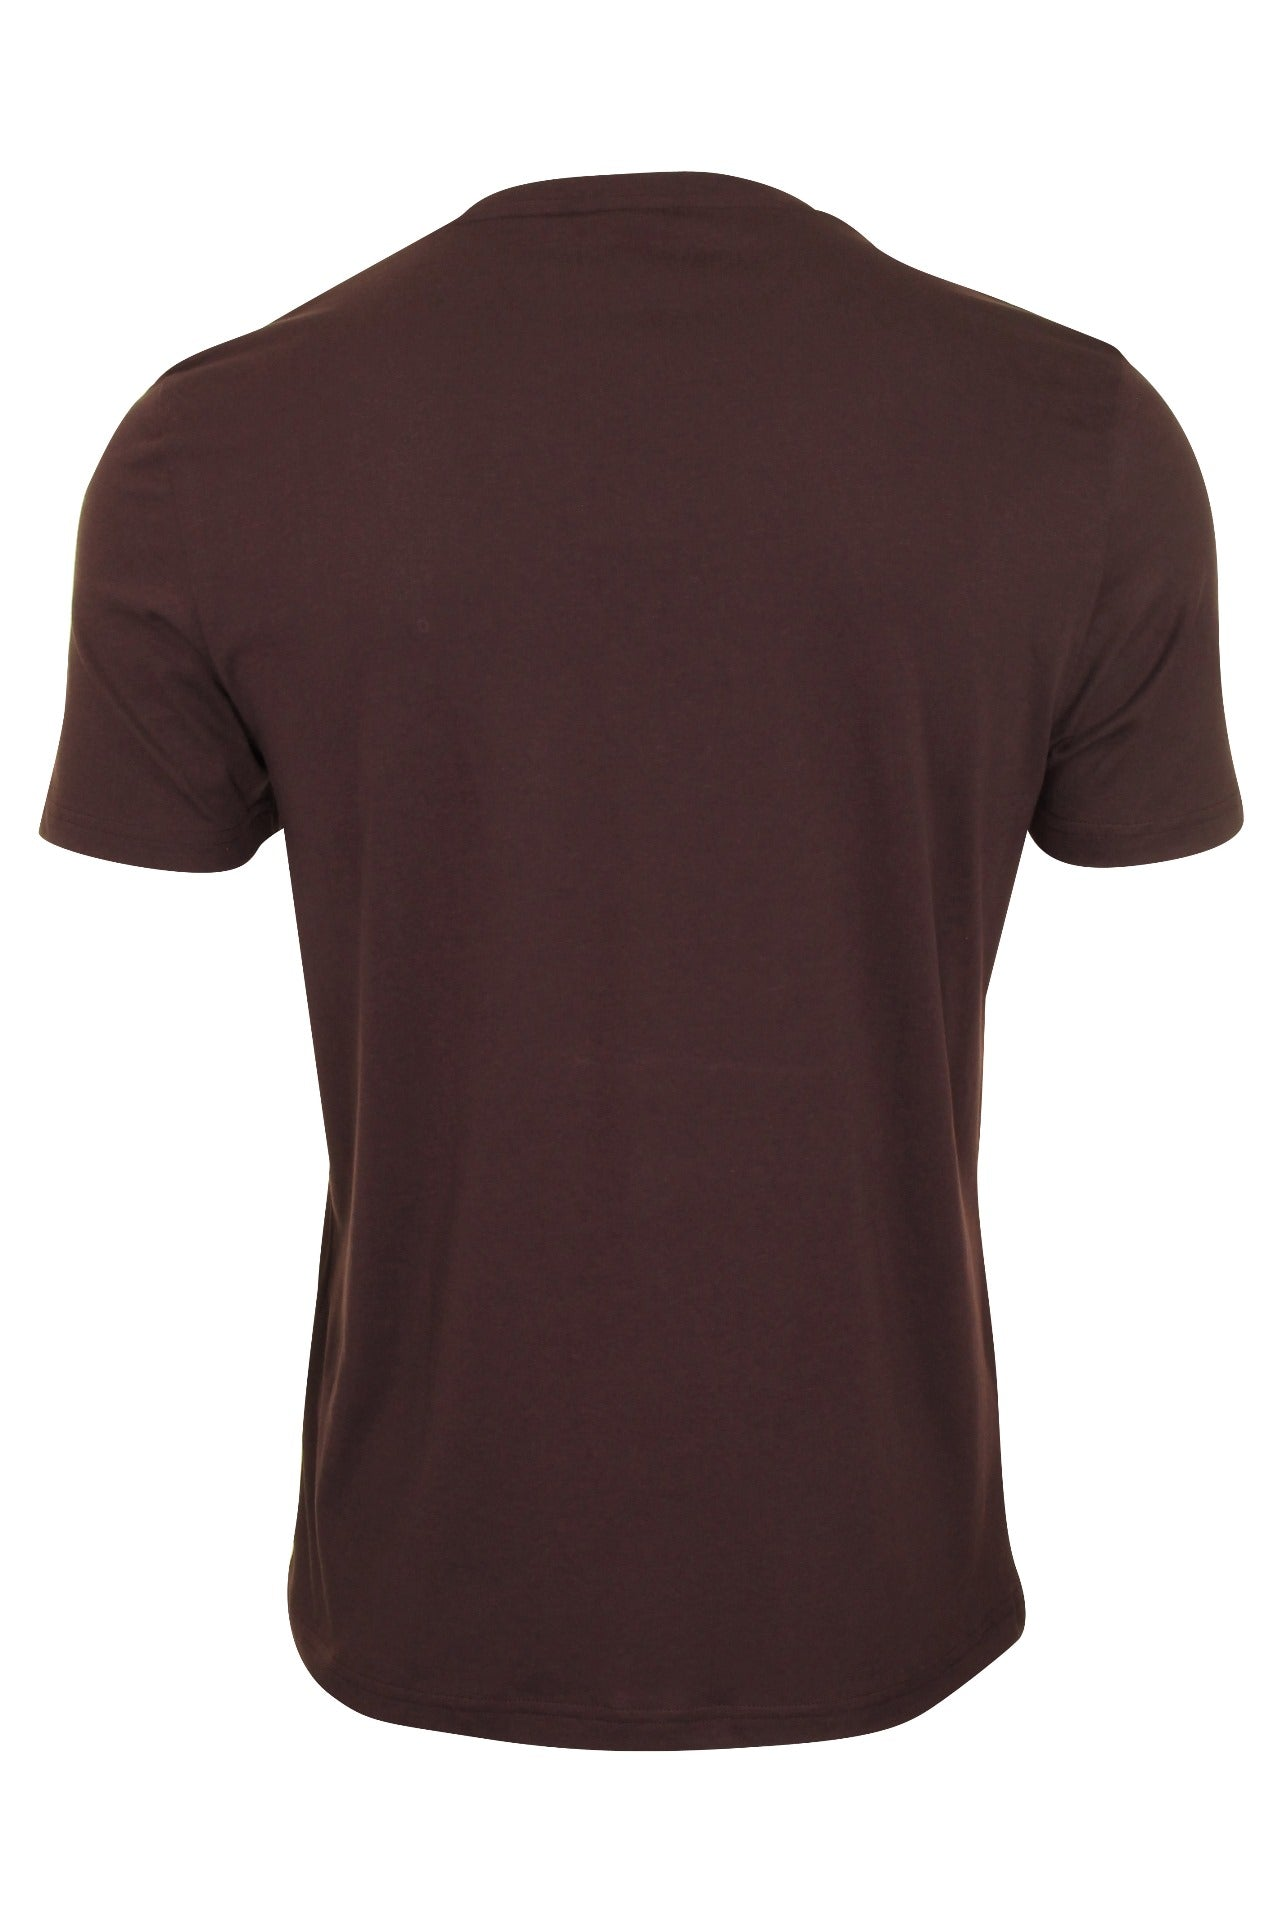 Mens Classic Spade Pocket T-Shirt by Ben Sherman-3